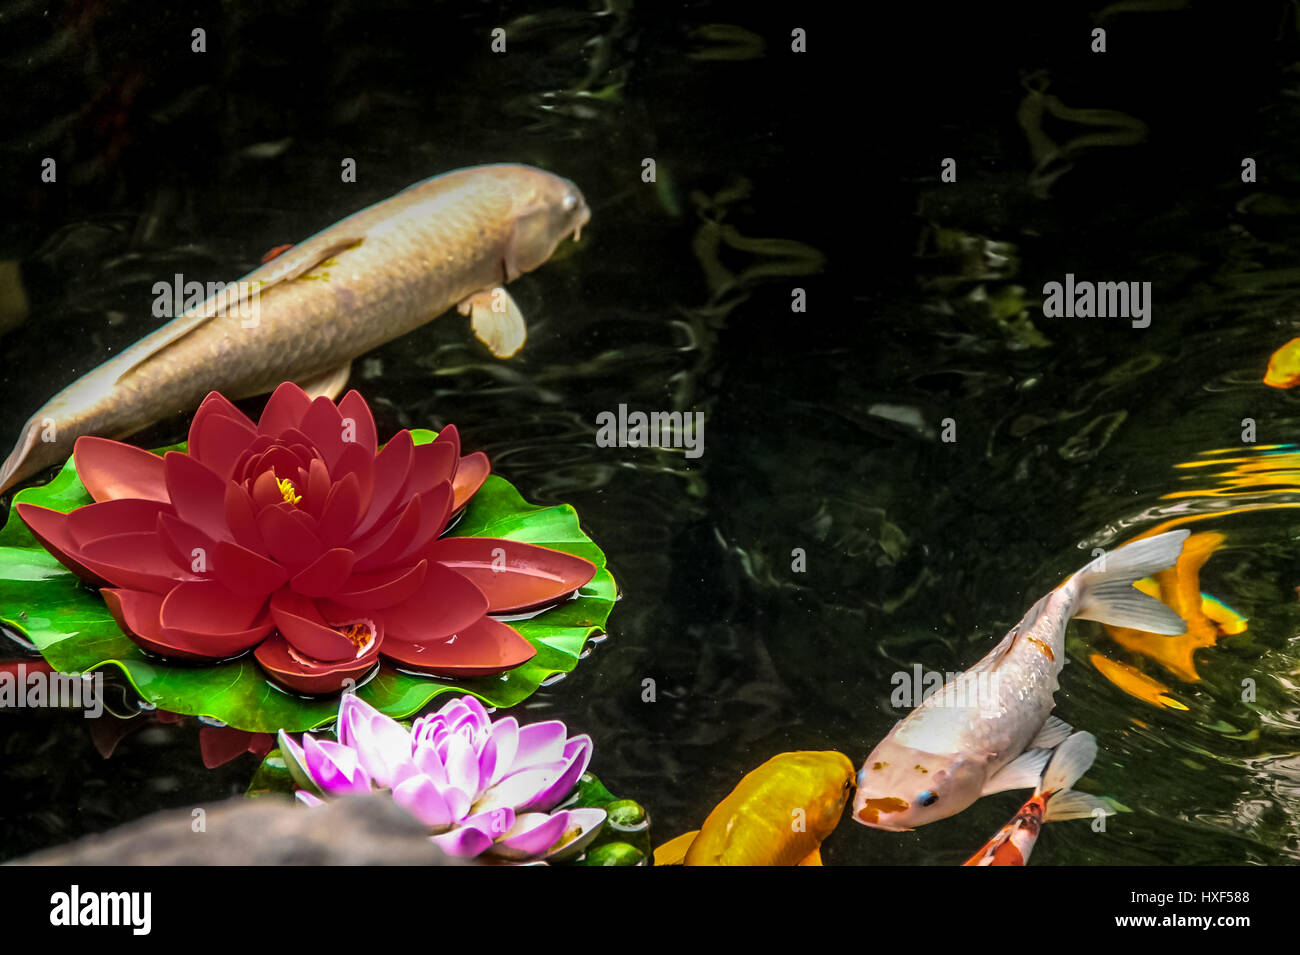 Koi Carp On White Stock Photos & Koi Carp On White Stock Images - Alamy